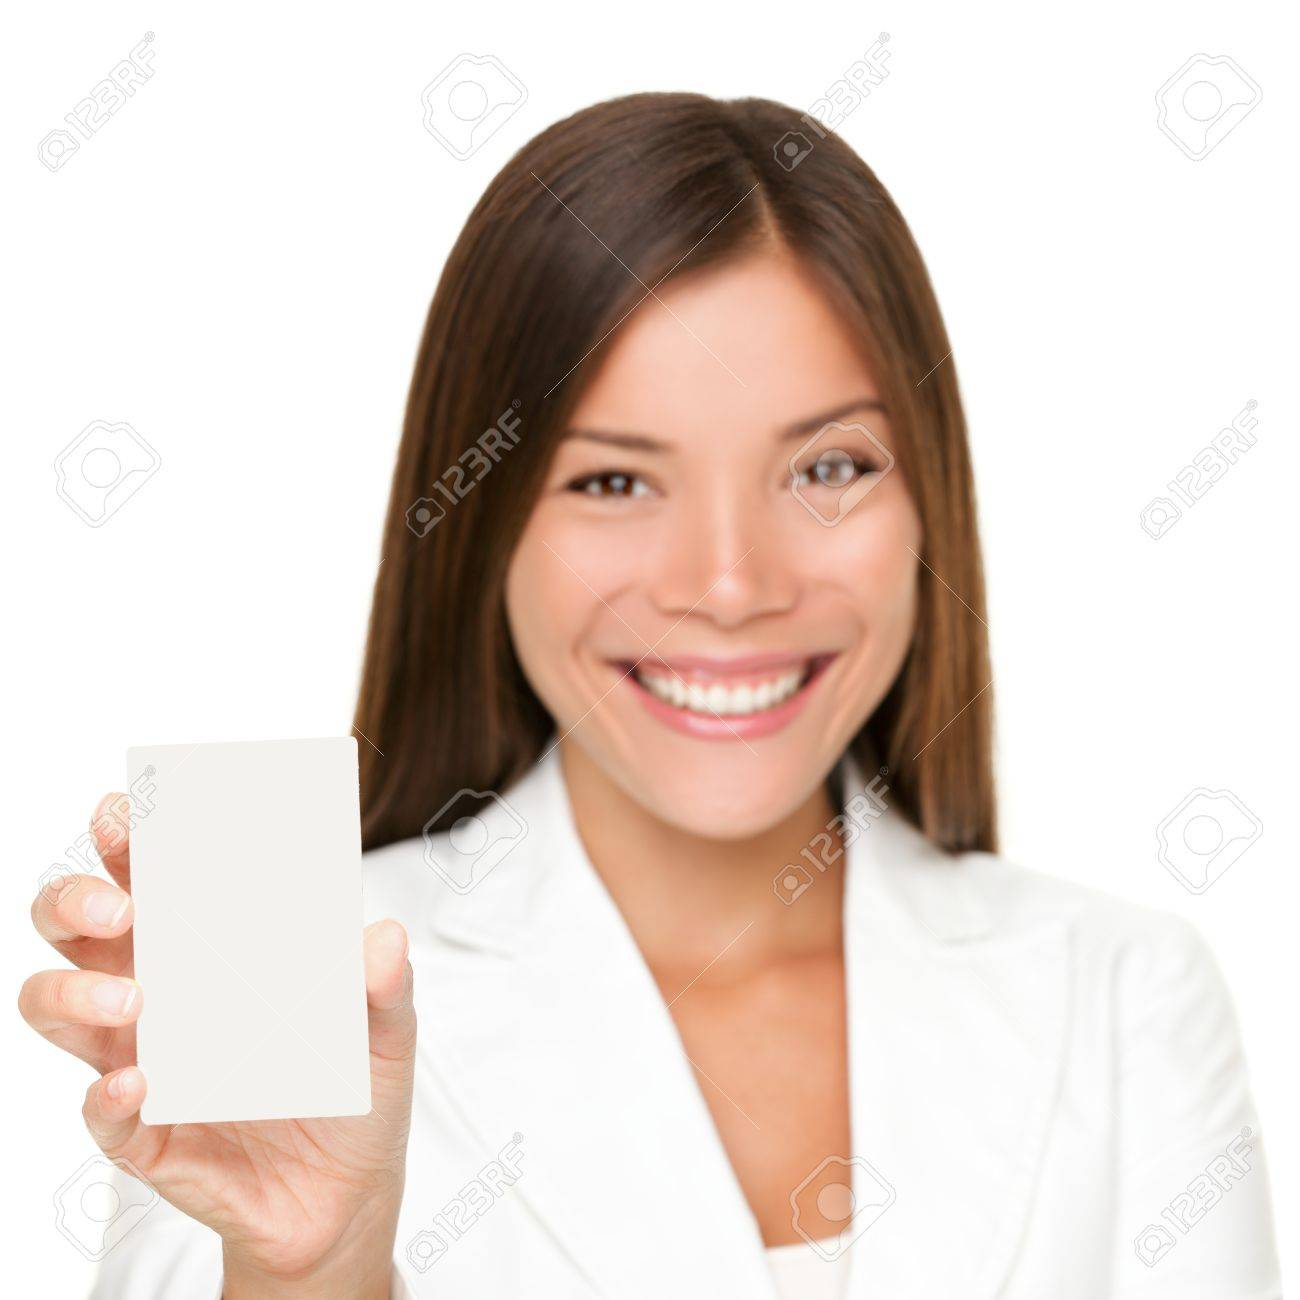 sign card woman holding paper like mobile phone or smart phone